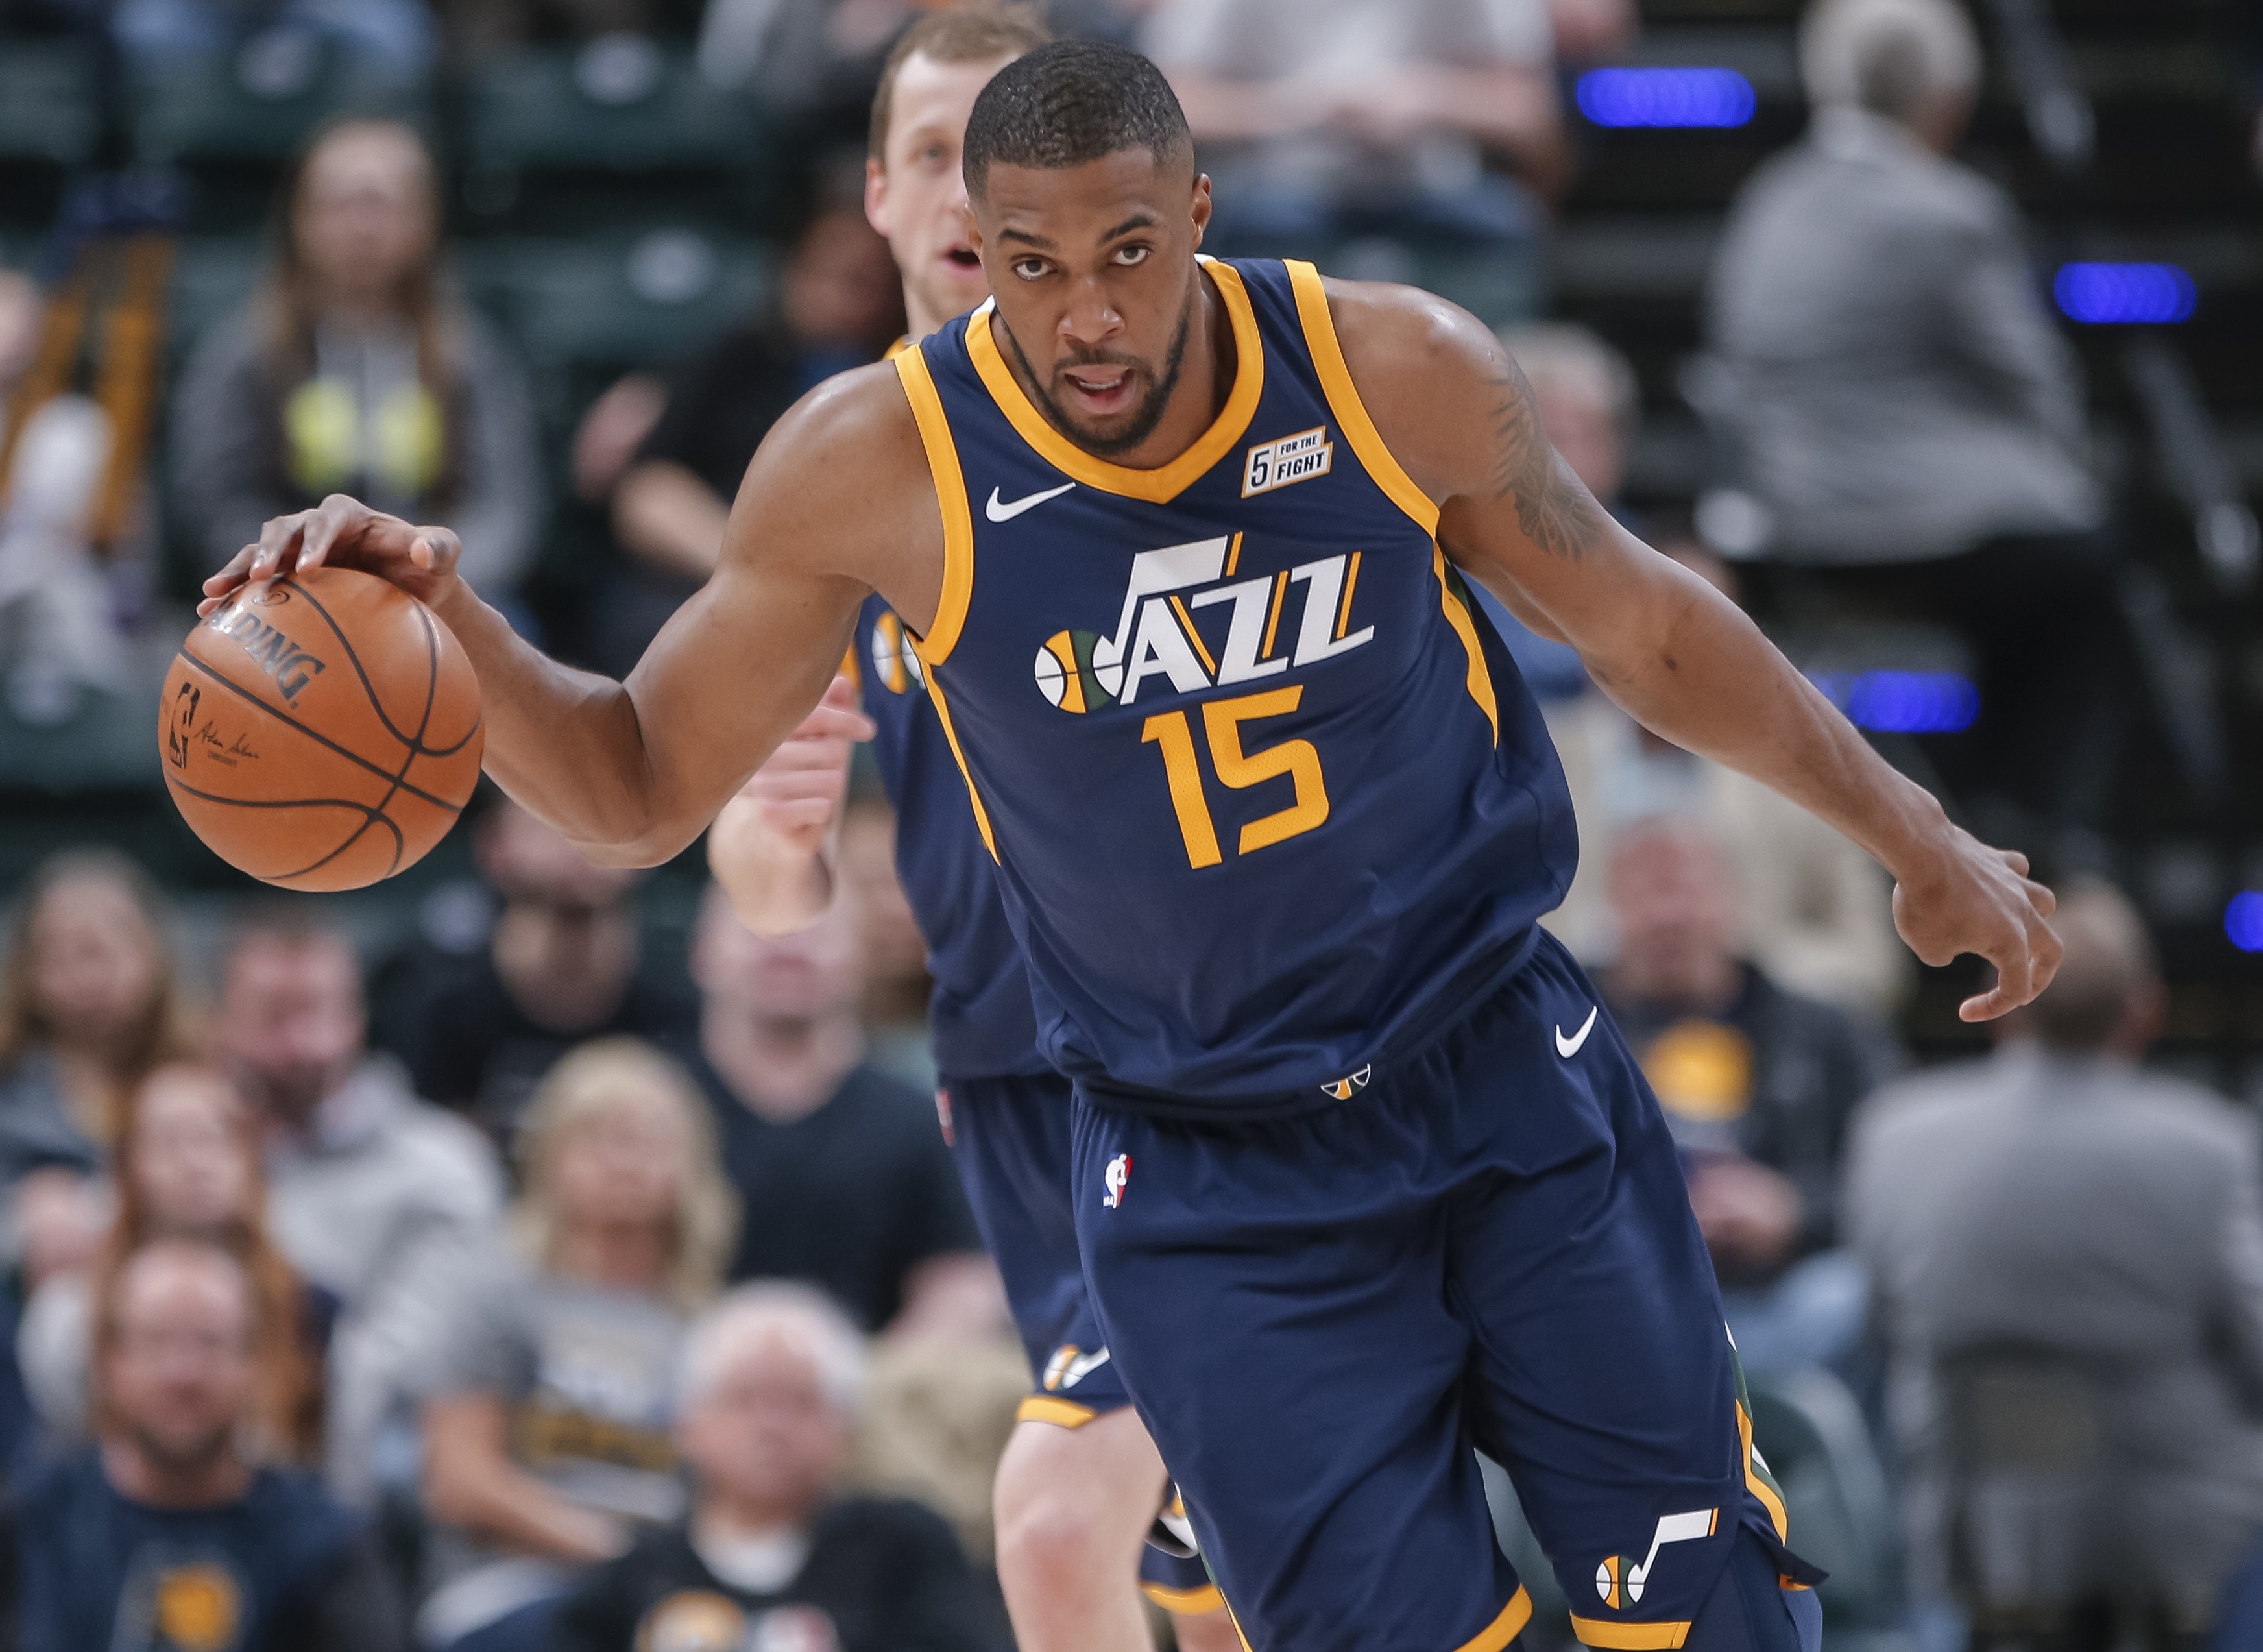 Utah Jazz may catch unexpected break after Anthony Davis injury